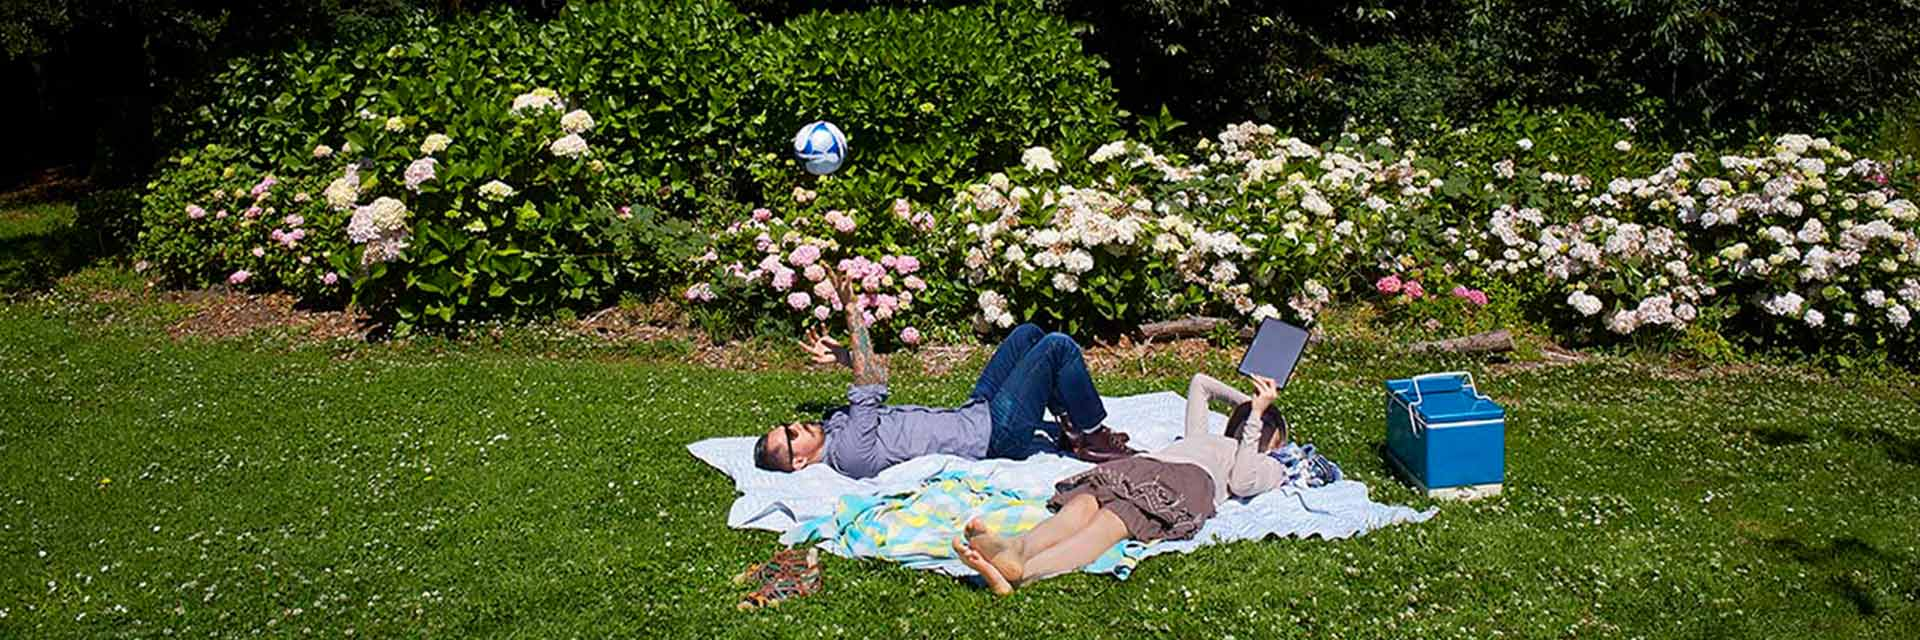 A man and woman lay on a picnic blanket in a park.